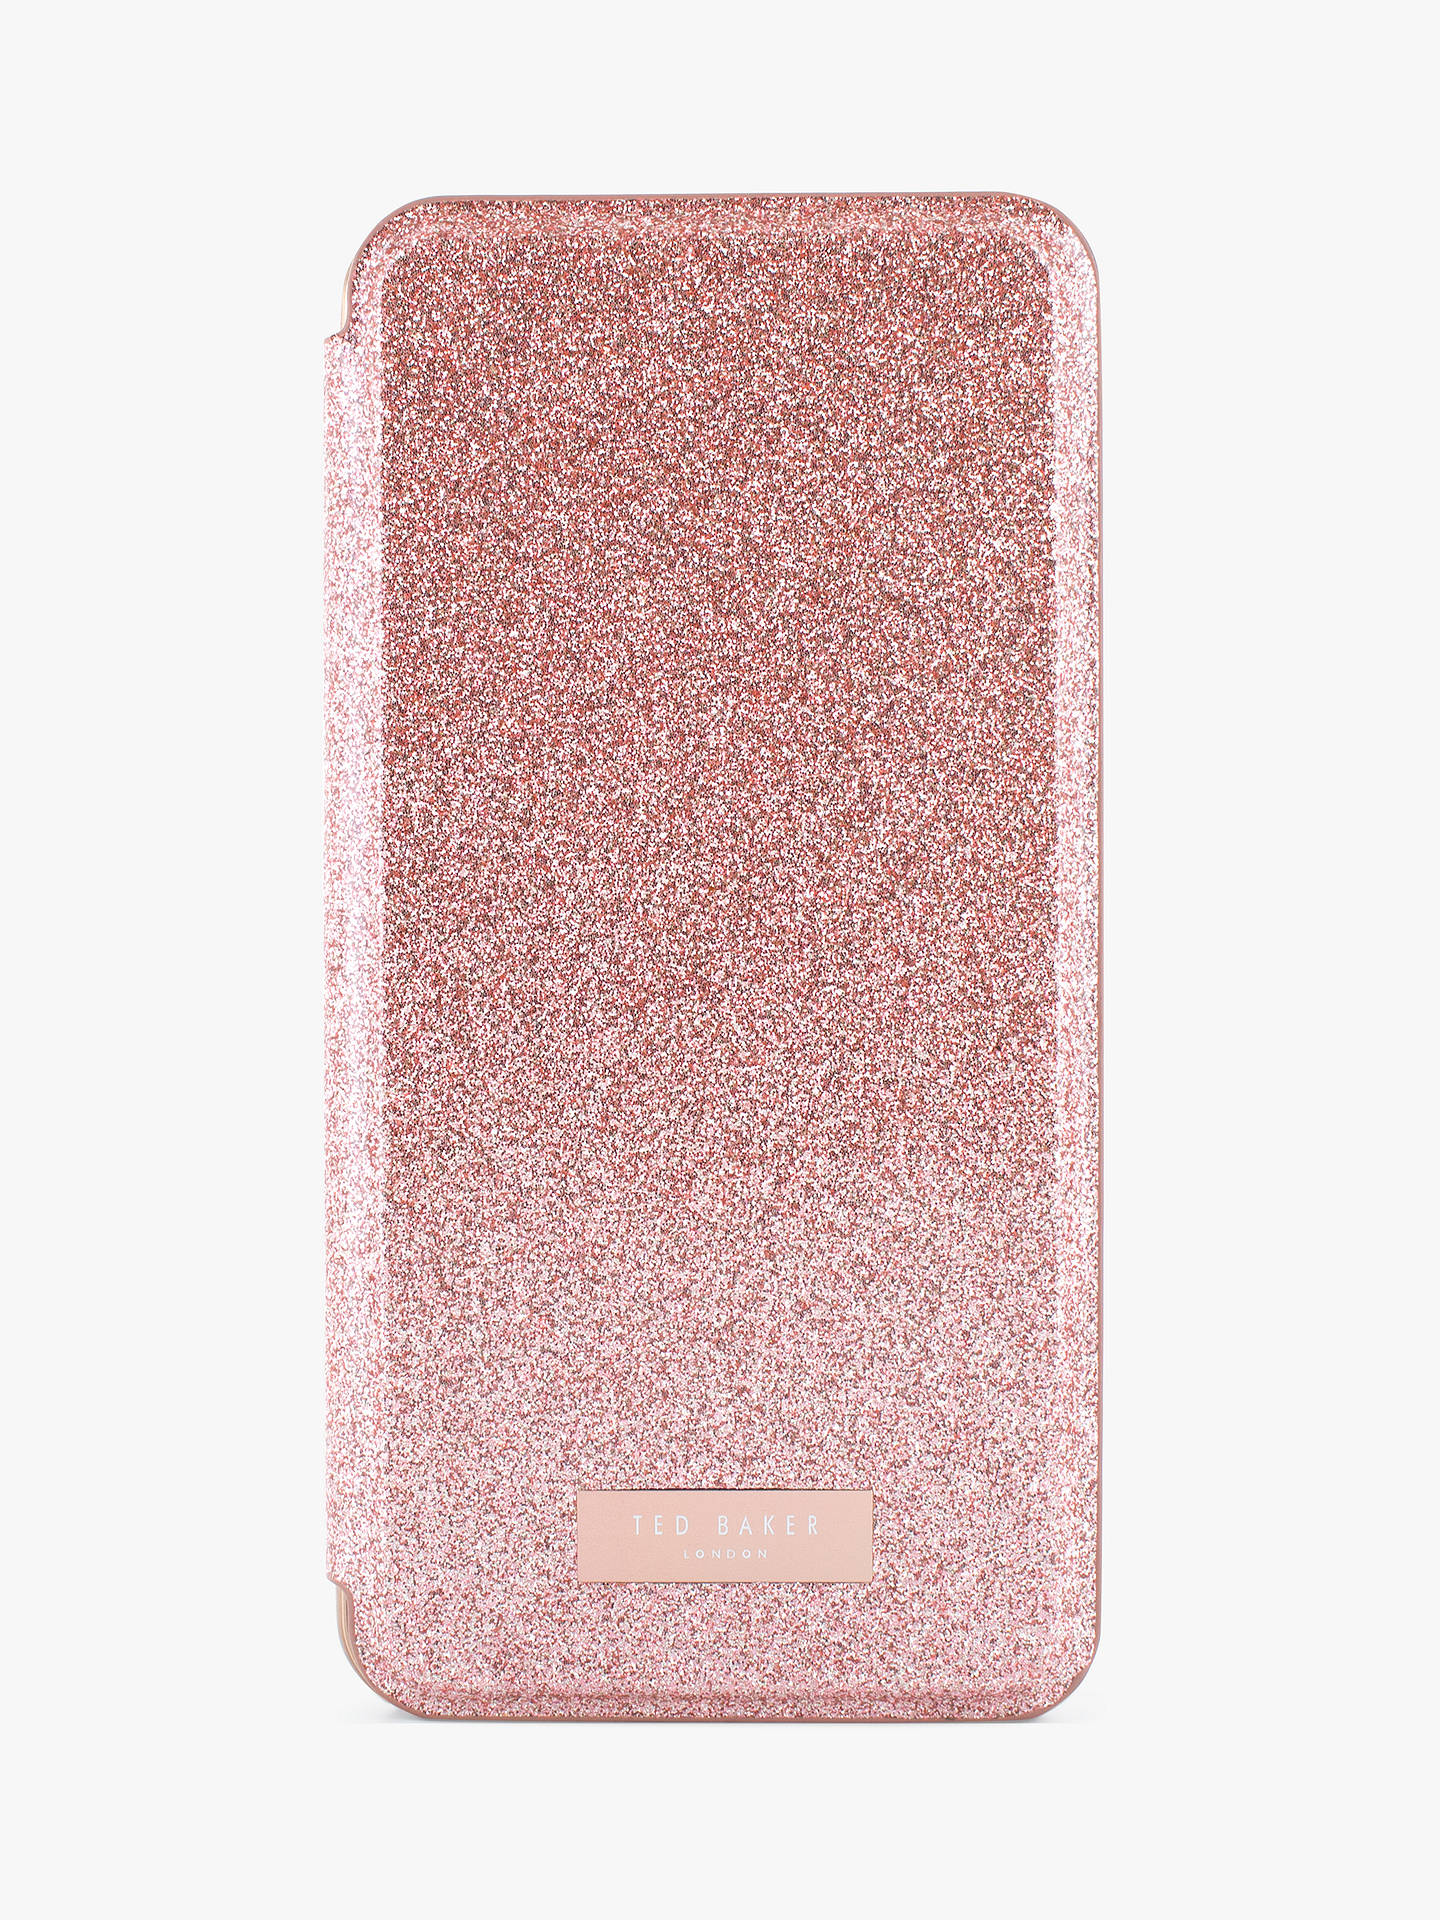 finest selection ea06a 843af Ted Baker SPRITSIE Mirror Folio Case for iPhone 6/7 and 8 Plus, Rose Gold